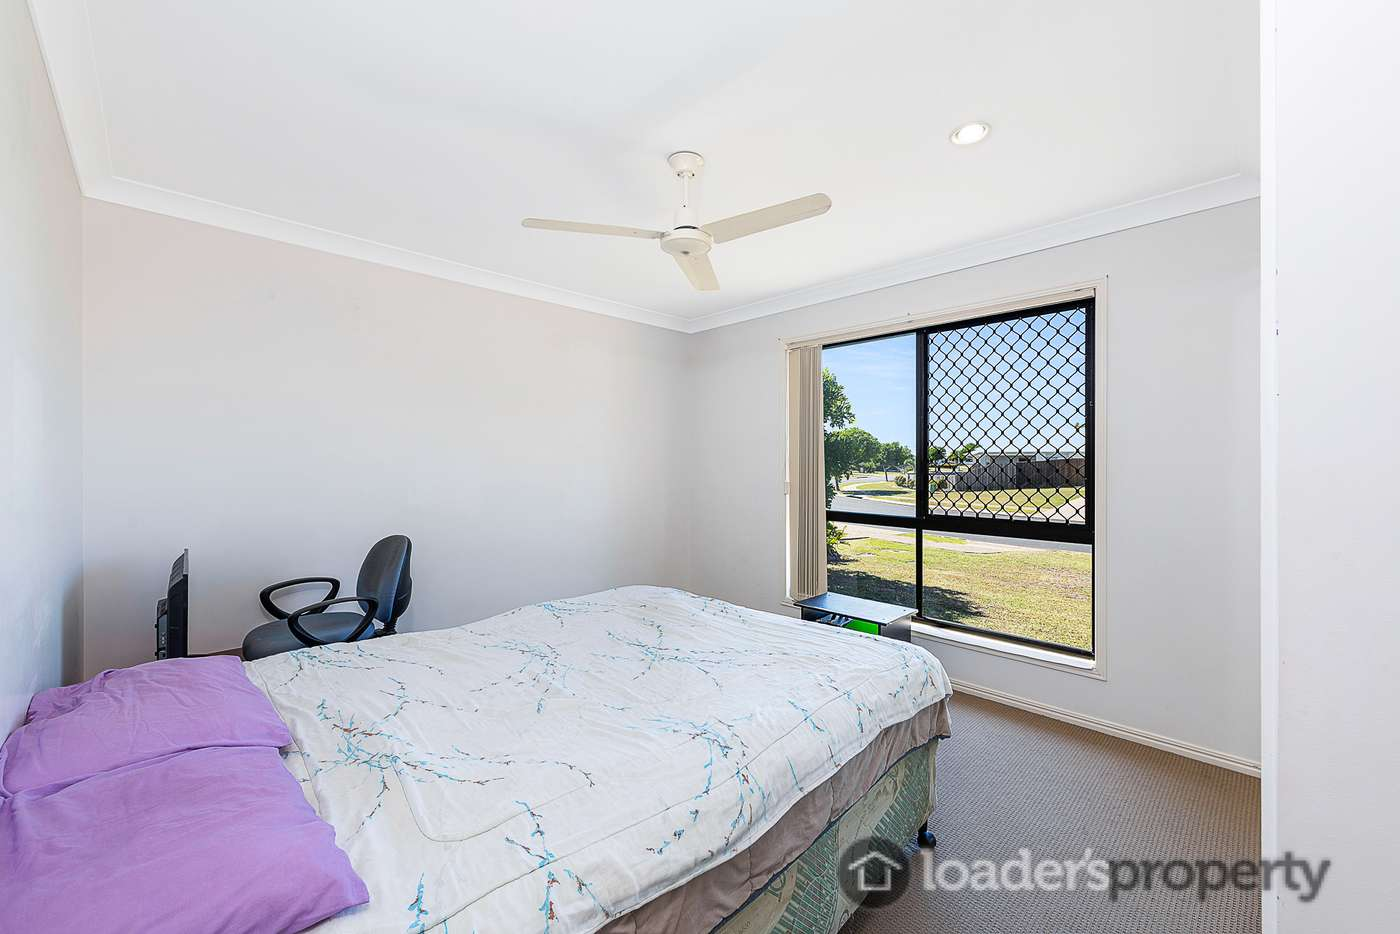 Seventh view of Homely house listing, 48 Breeze Dr, Bargara QLD 4670